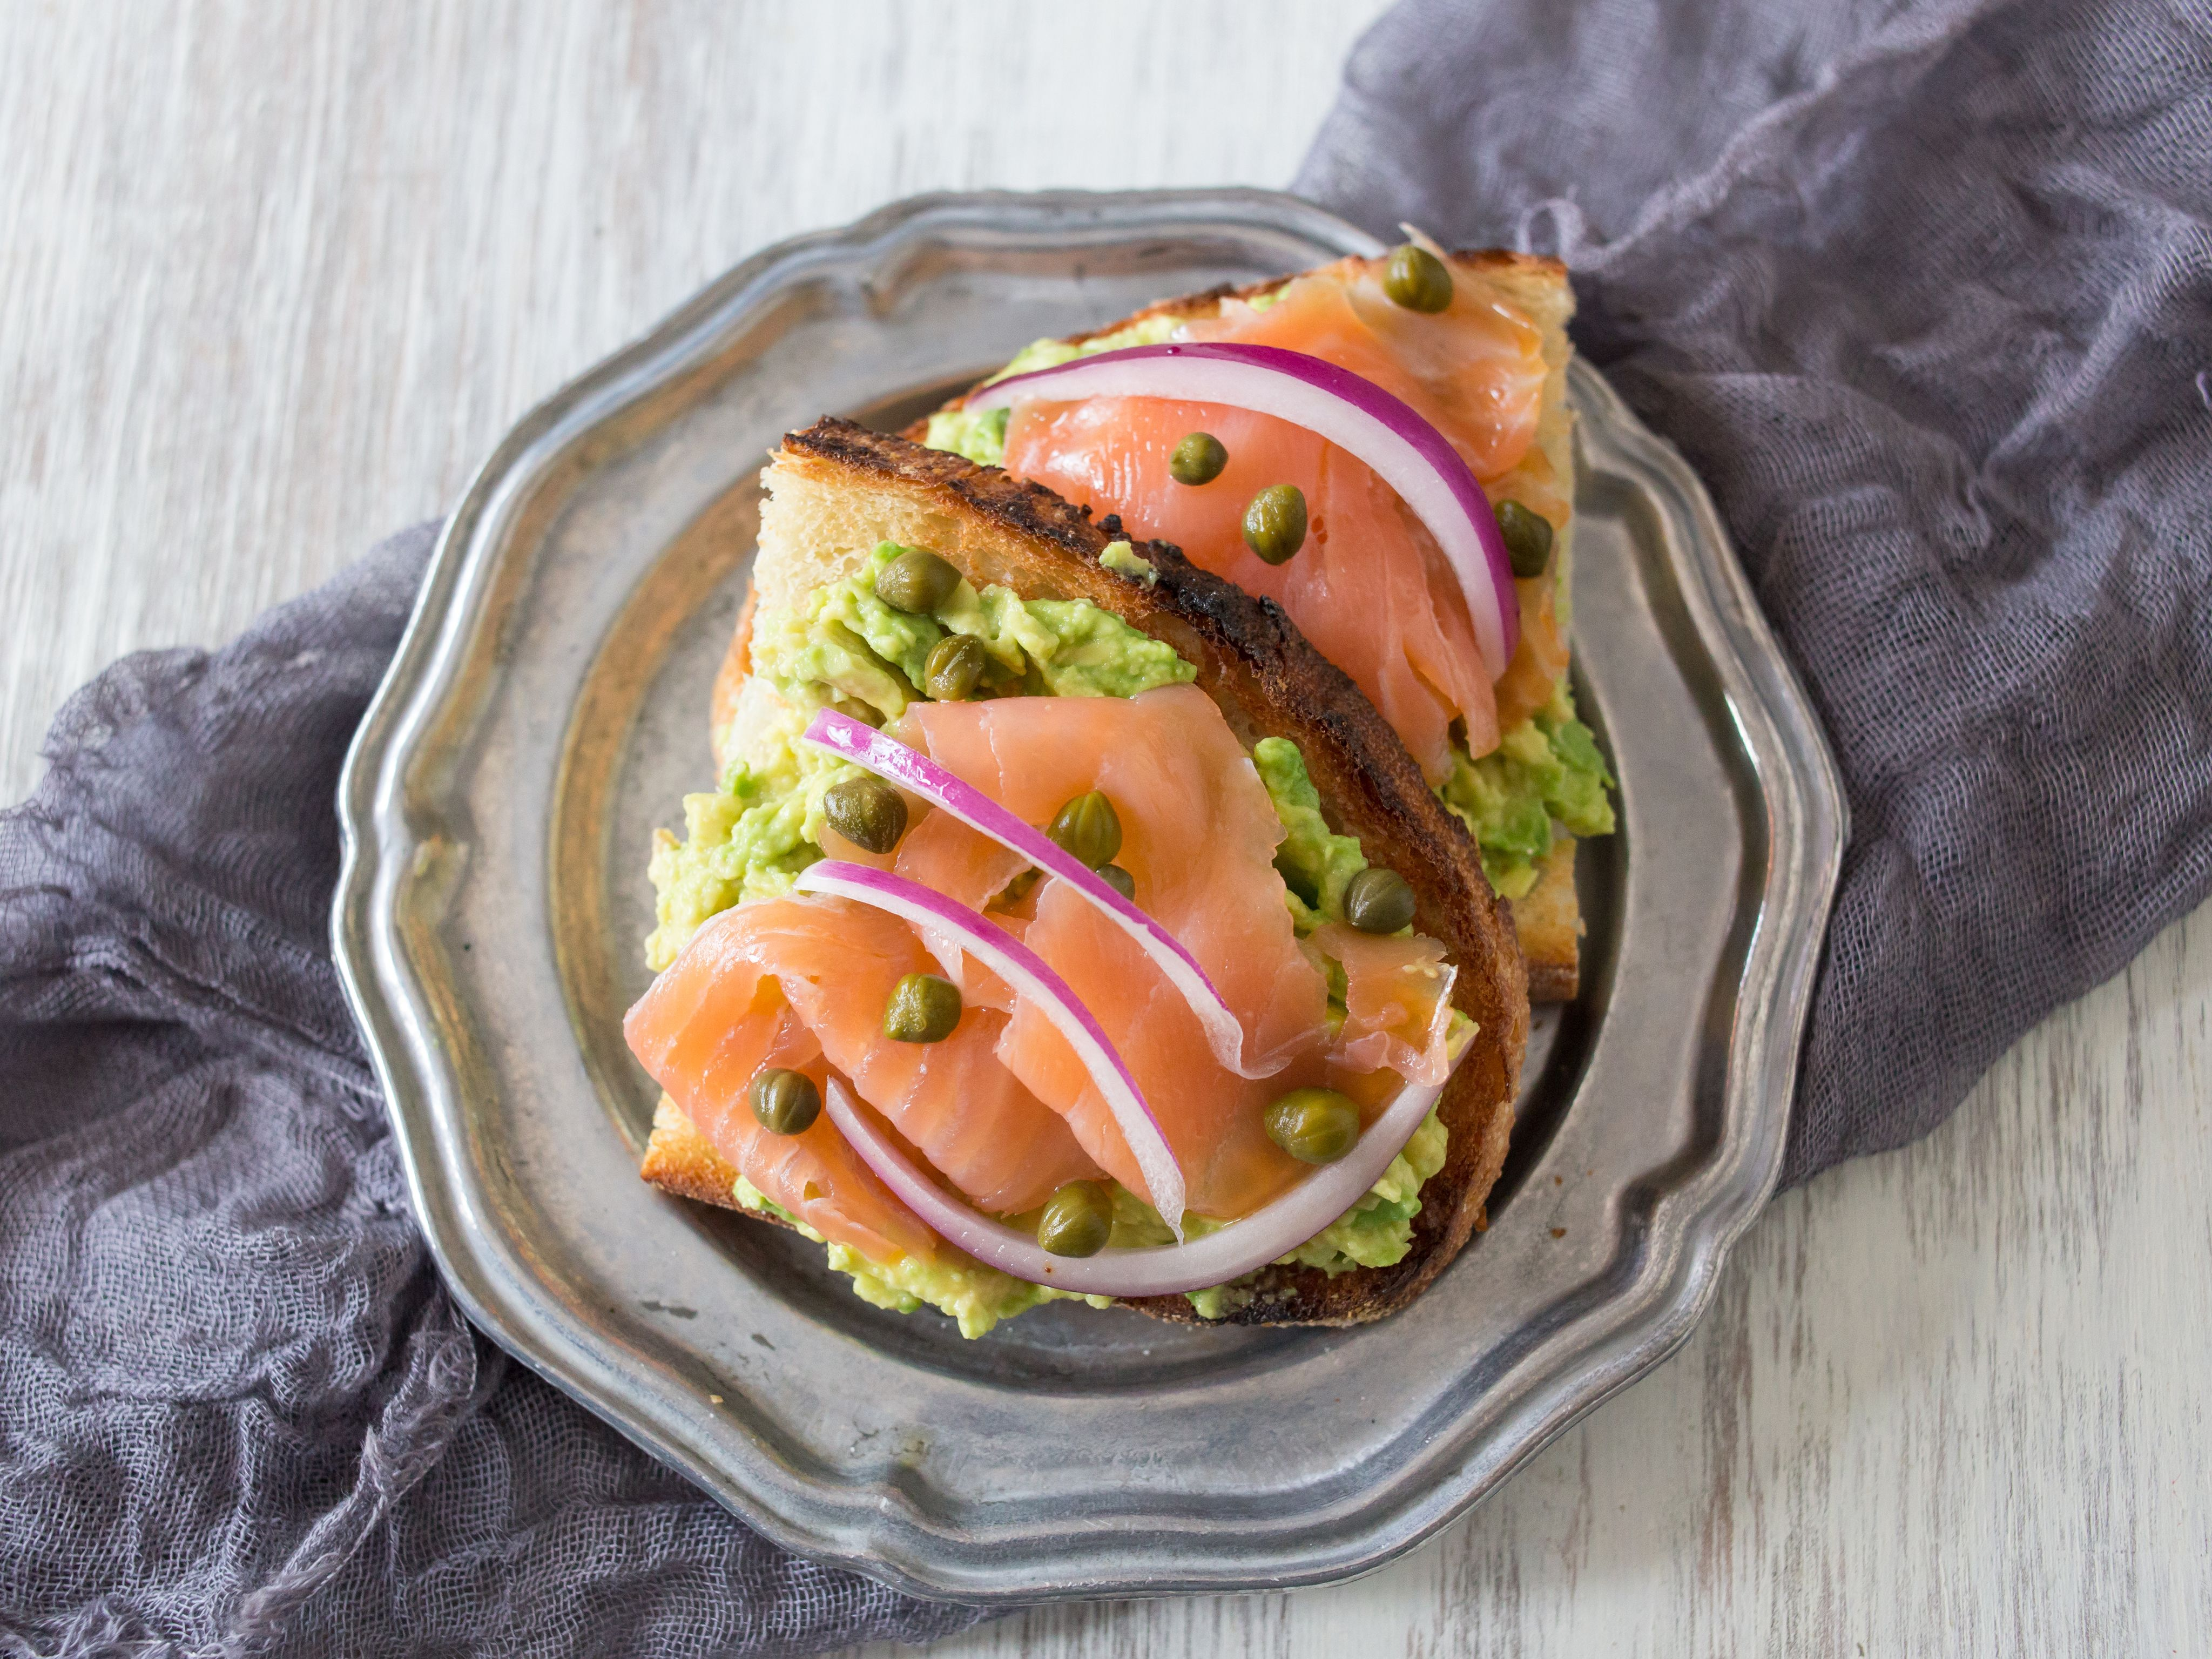 Upgrade your bagel and lox by trying our trendy Avocado Lox Toast.